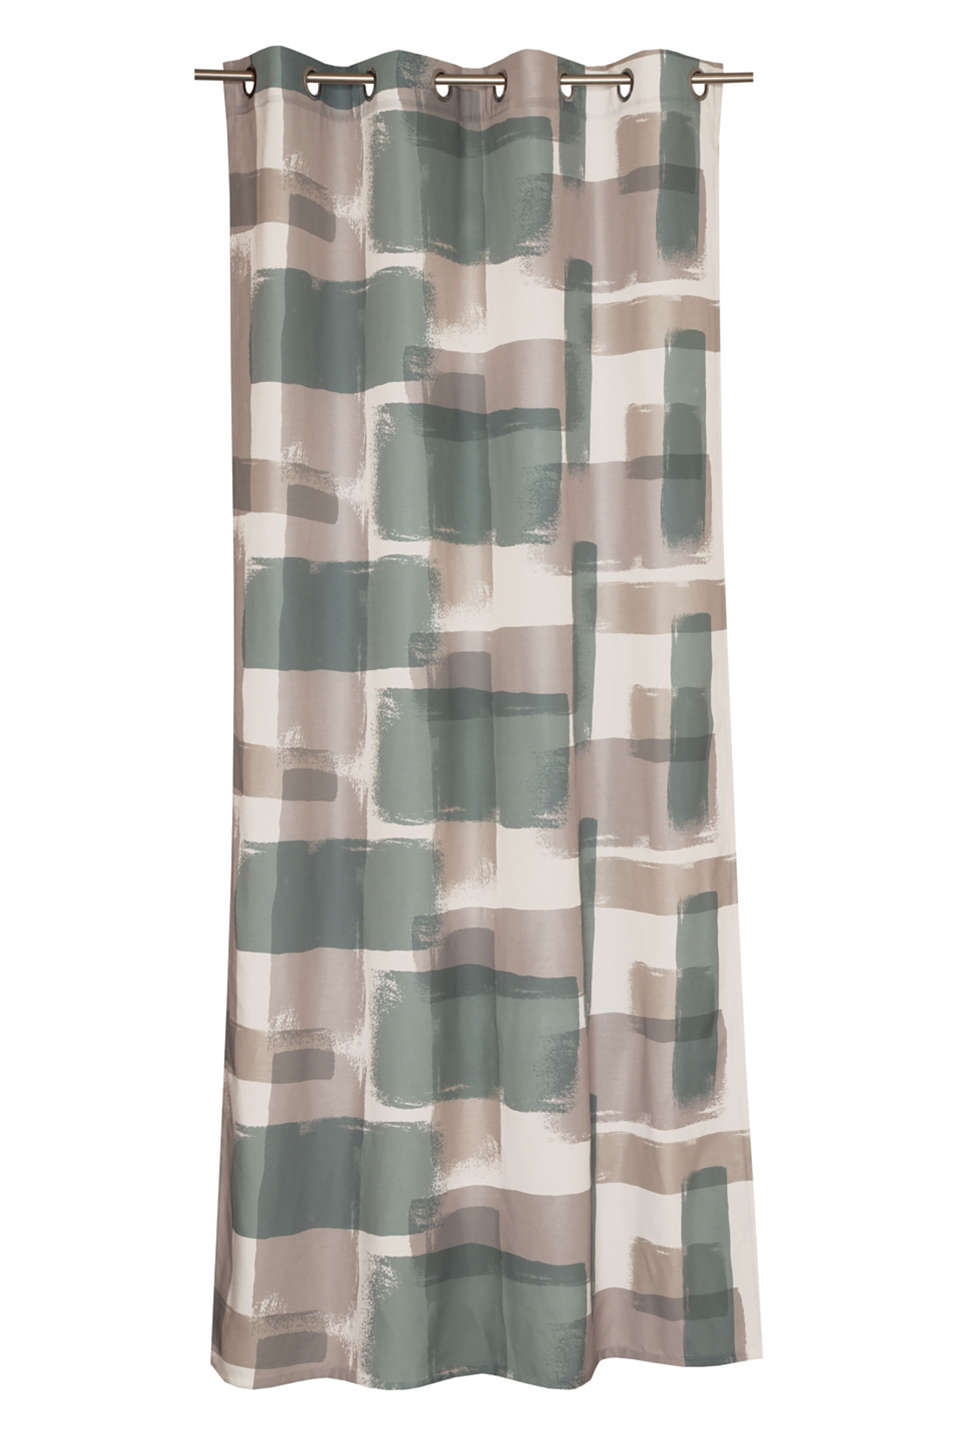 This slightly sheer eyelet curtain stands out thanks to its modern graphic print